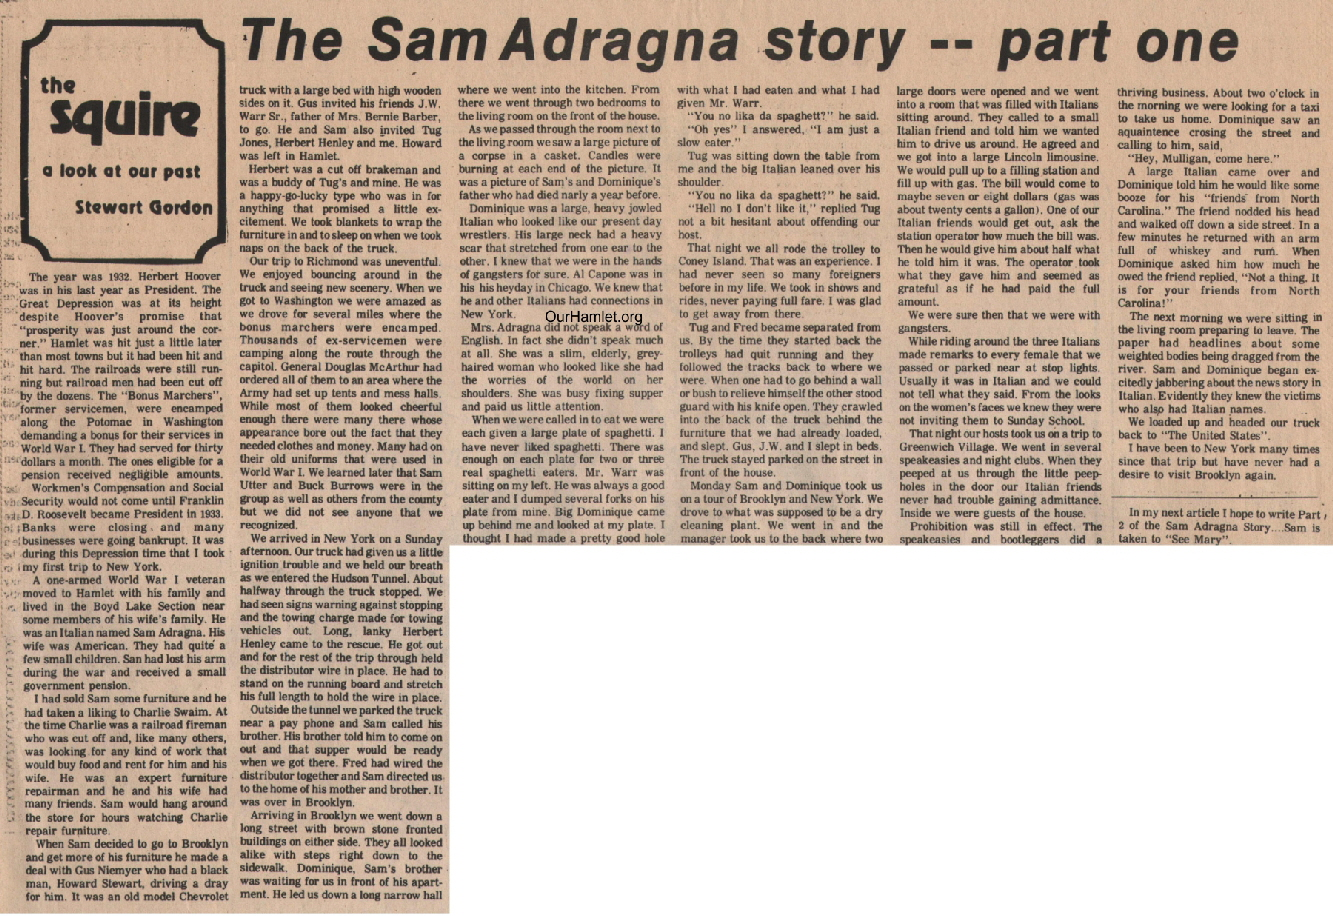 The Squire - Sam Adragna Story Part 1 OH